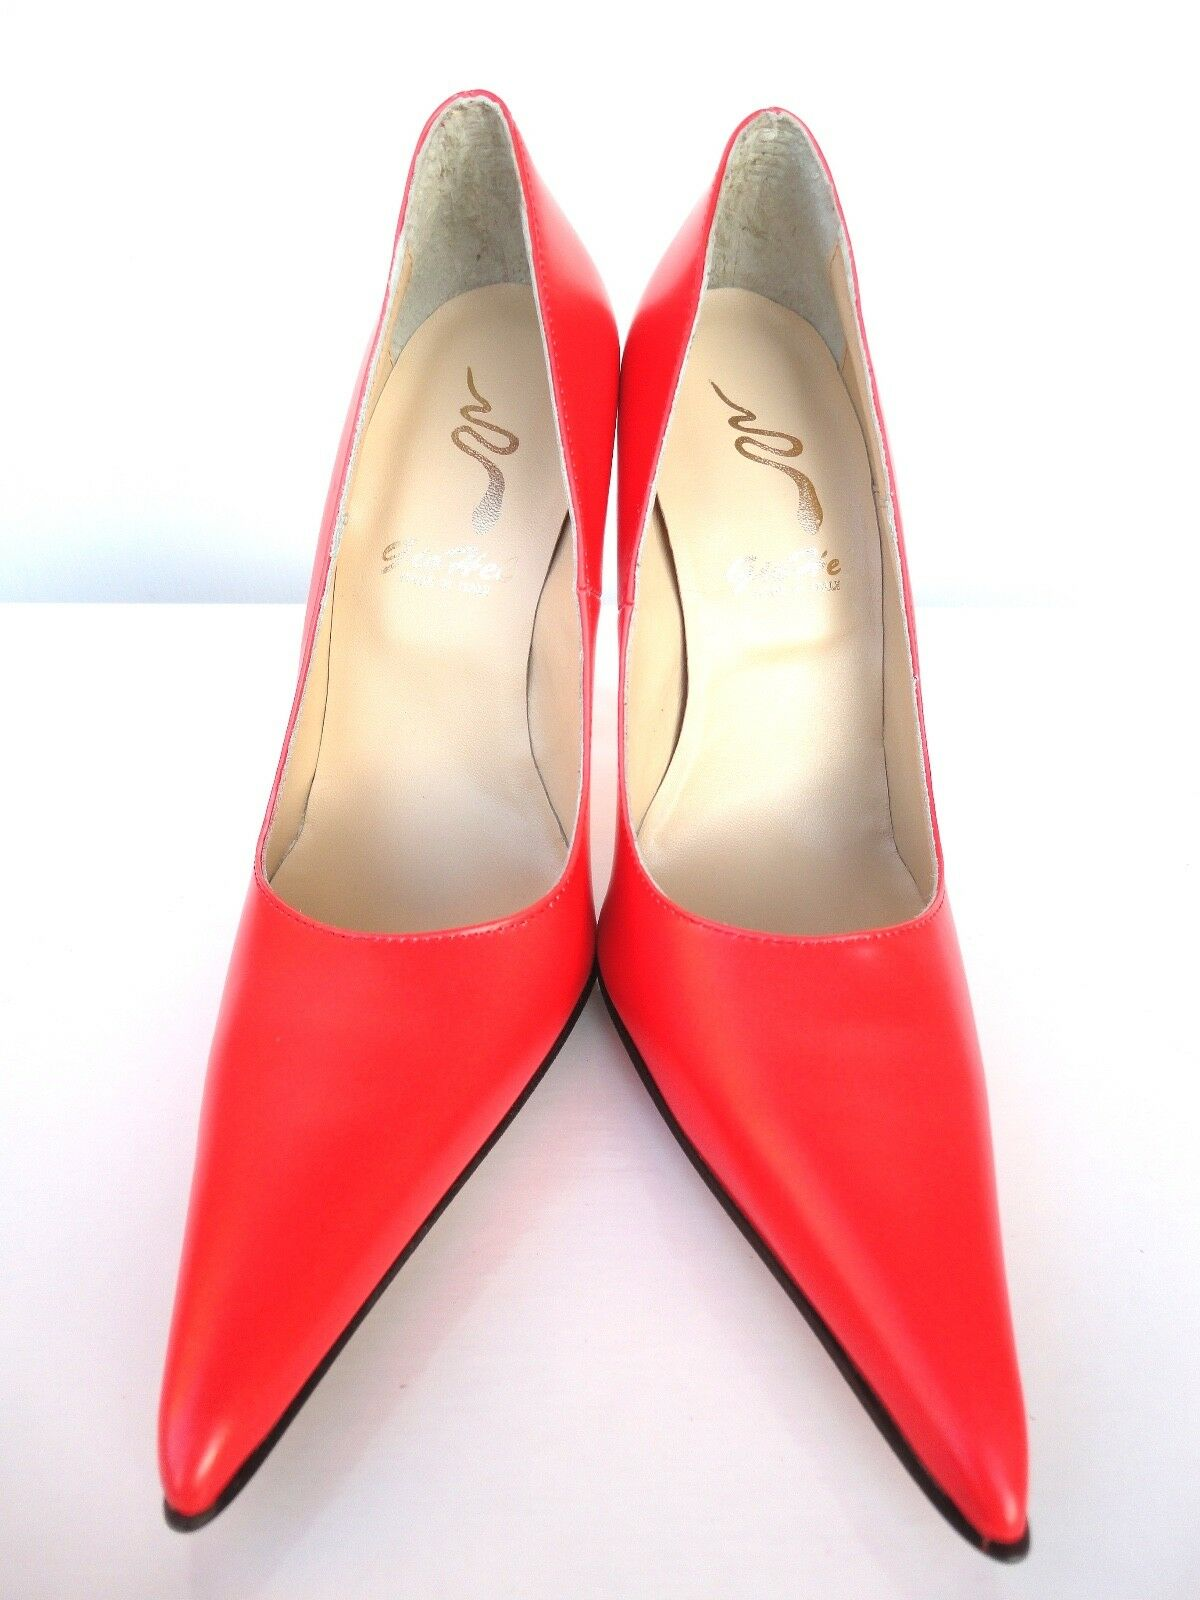 GIOHEL TOE ITALY HIGH HEELS POINTY TOE GIOHEL PUMPS SCHUHE LEATHER DECOLTE ROT ROT ROSSO 45 ed4e4a